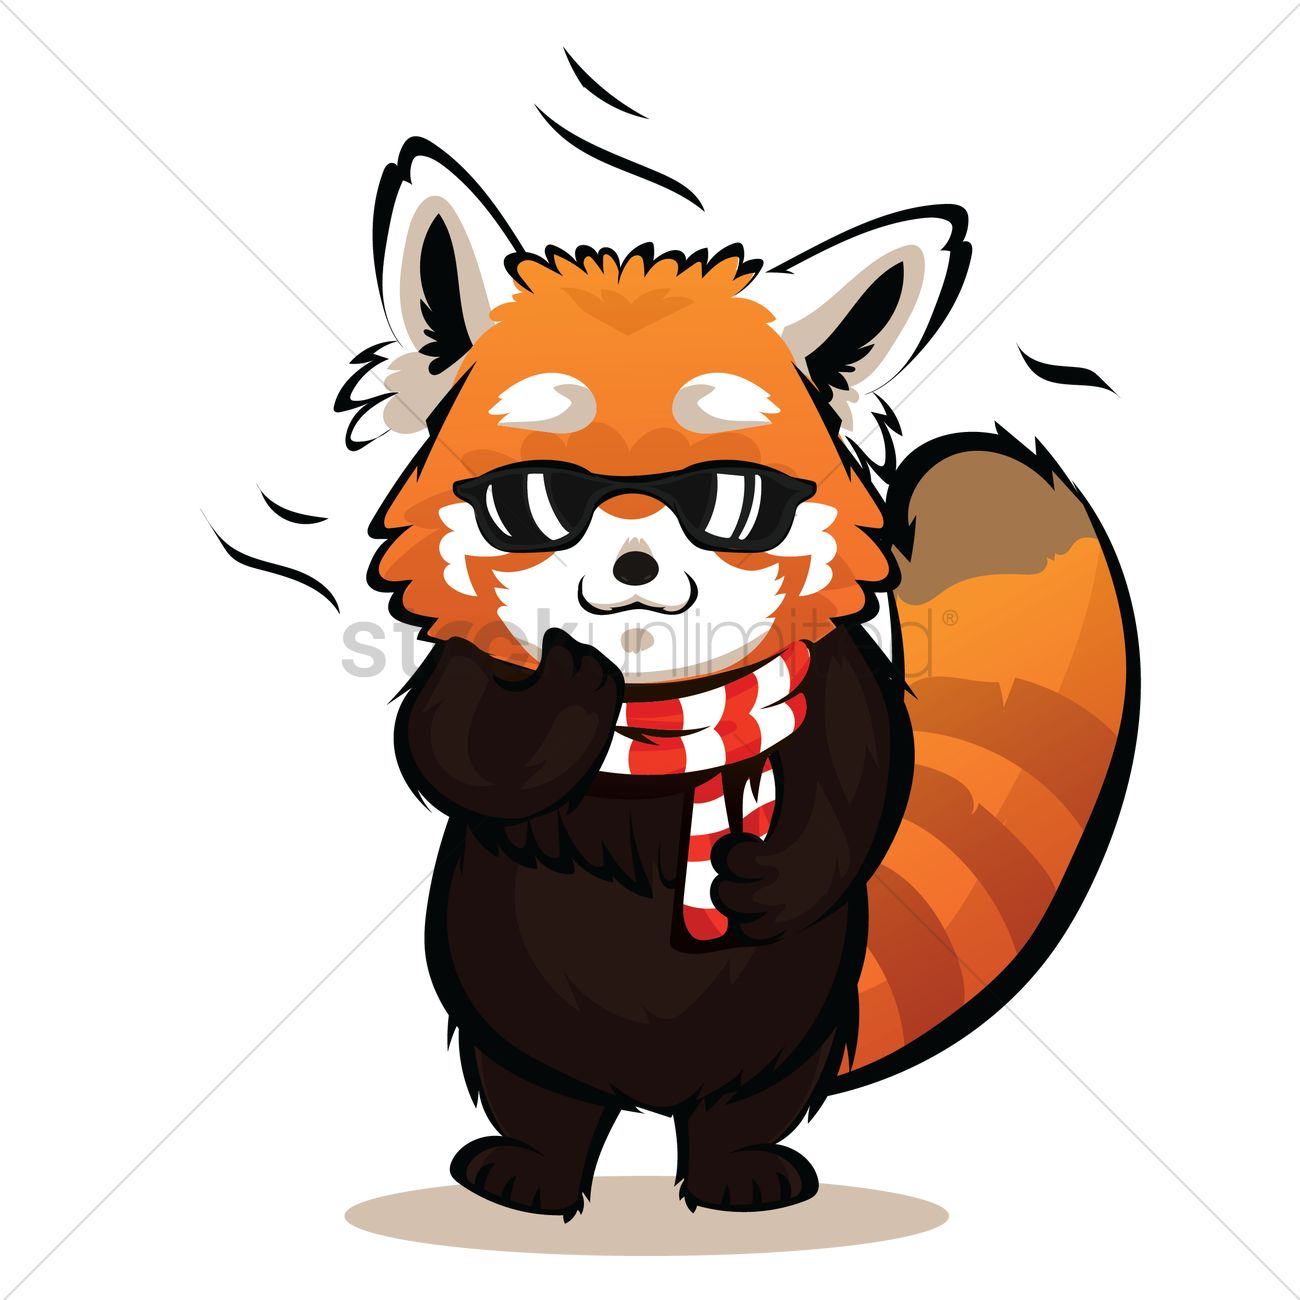 1300x1300 Cartoon Red Panda Being Cool Vector Image 3 Stockunlimited Clip